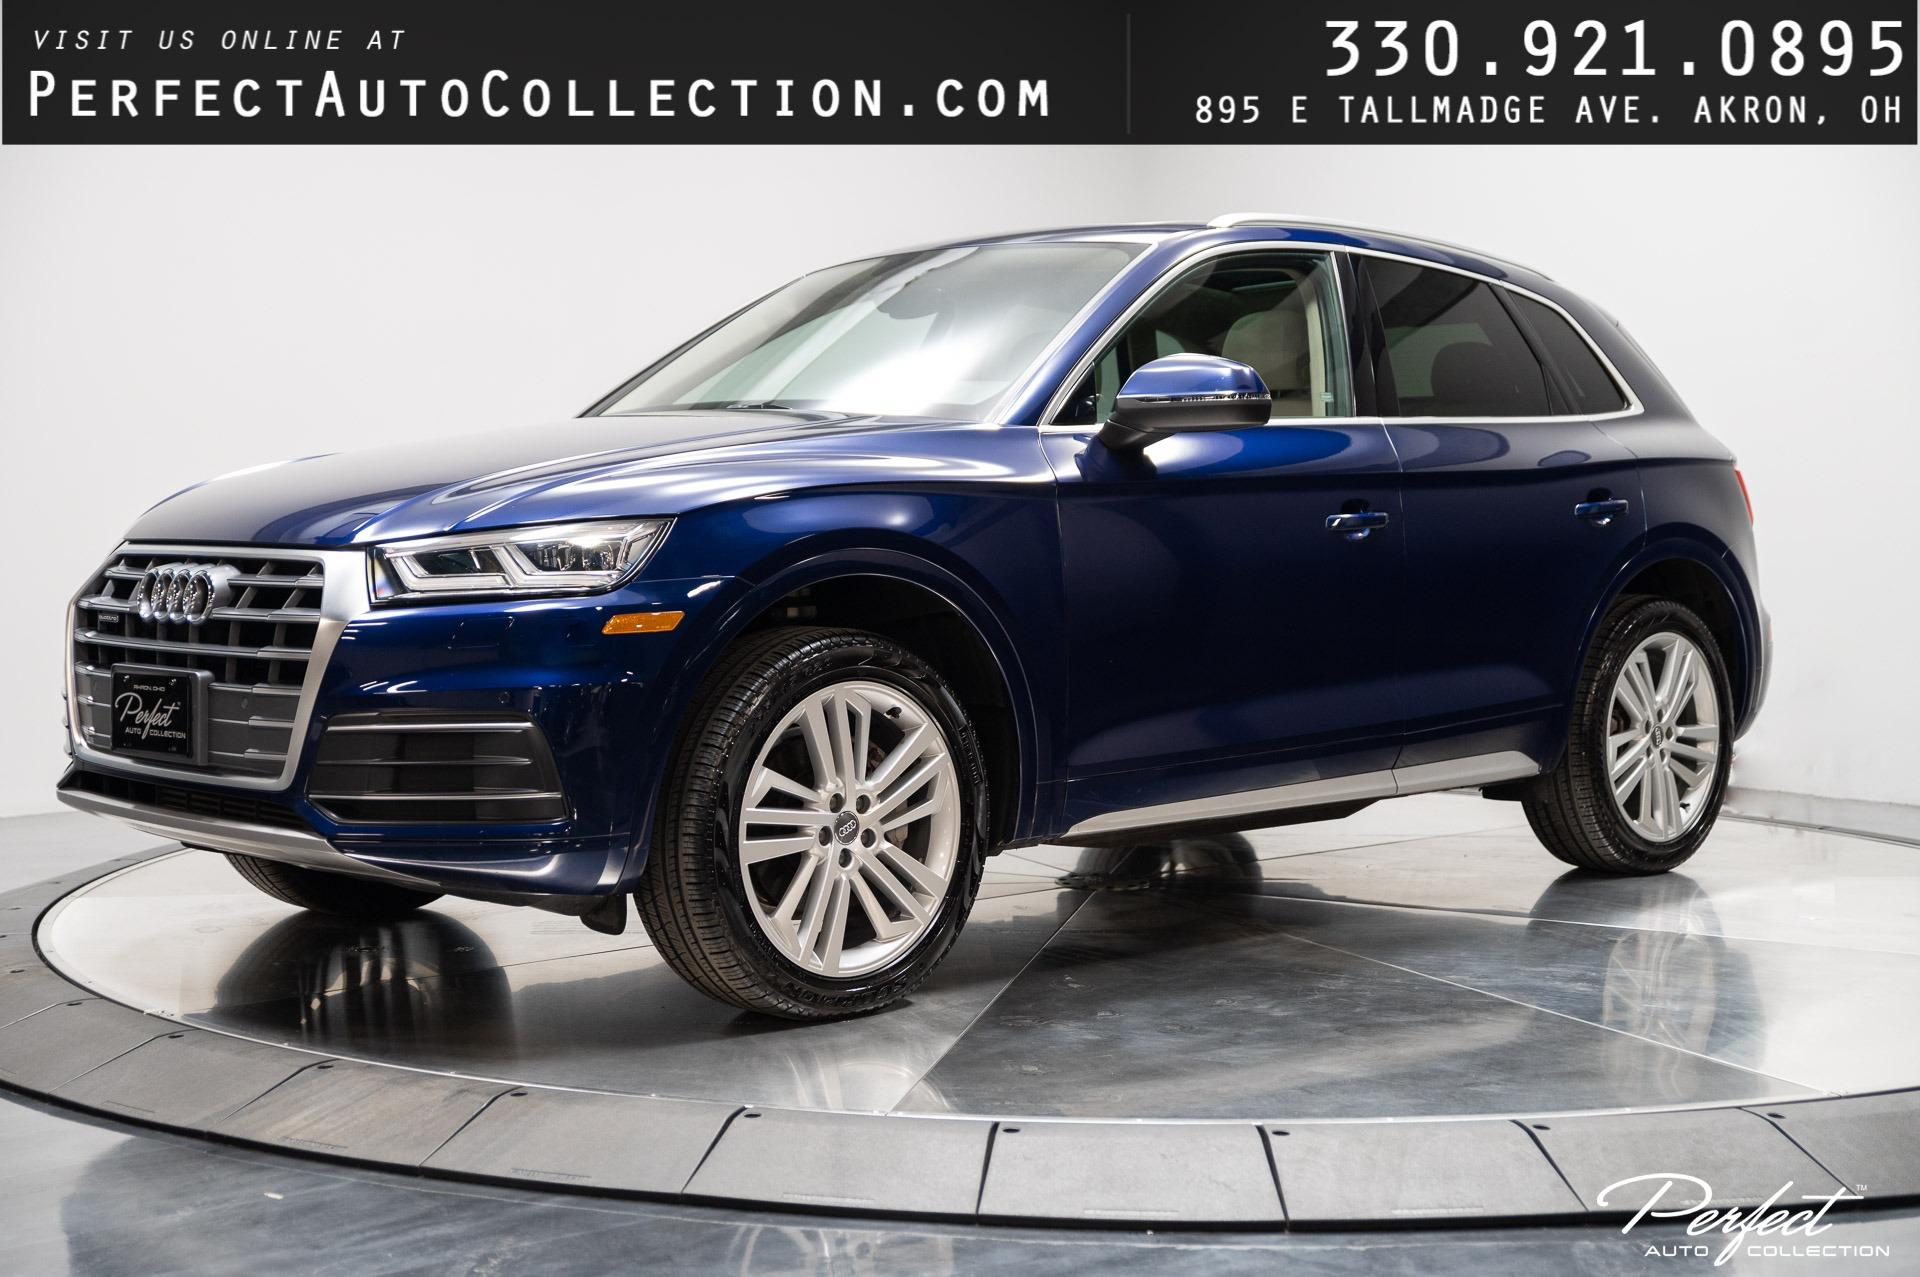 Used 2018 Audi Q5 2.0T quattro Premium Plus for sale Sold at Perfect Auto Collection in Akron OH 44310 1